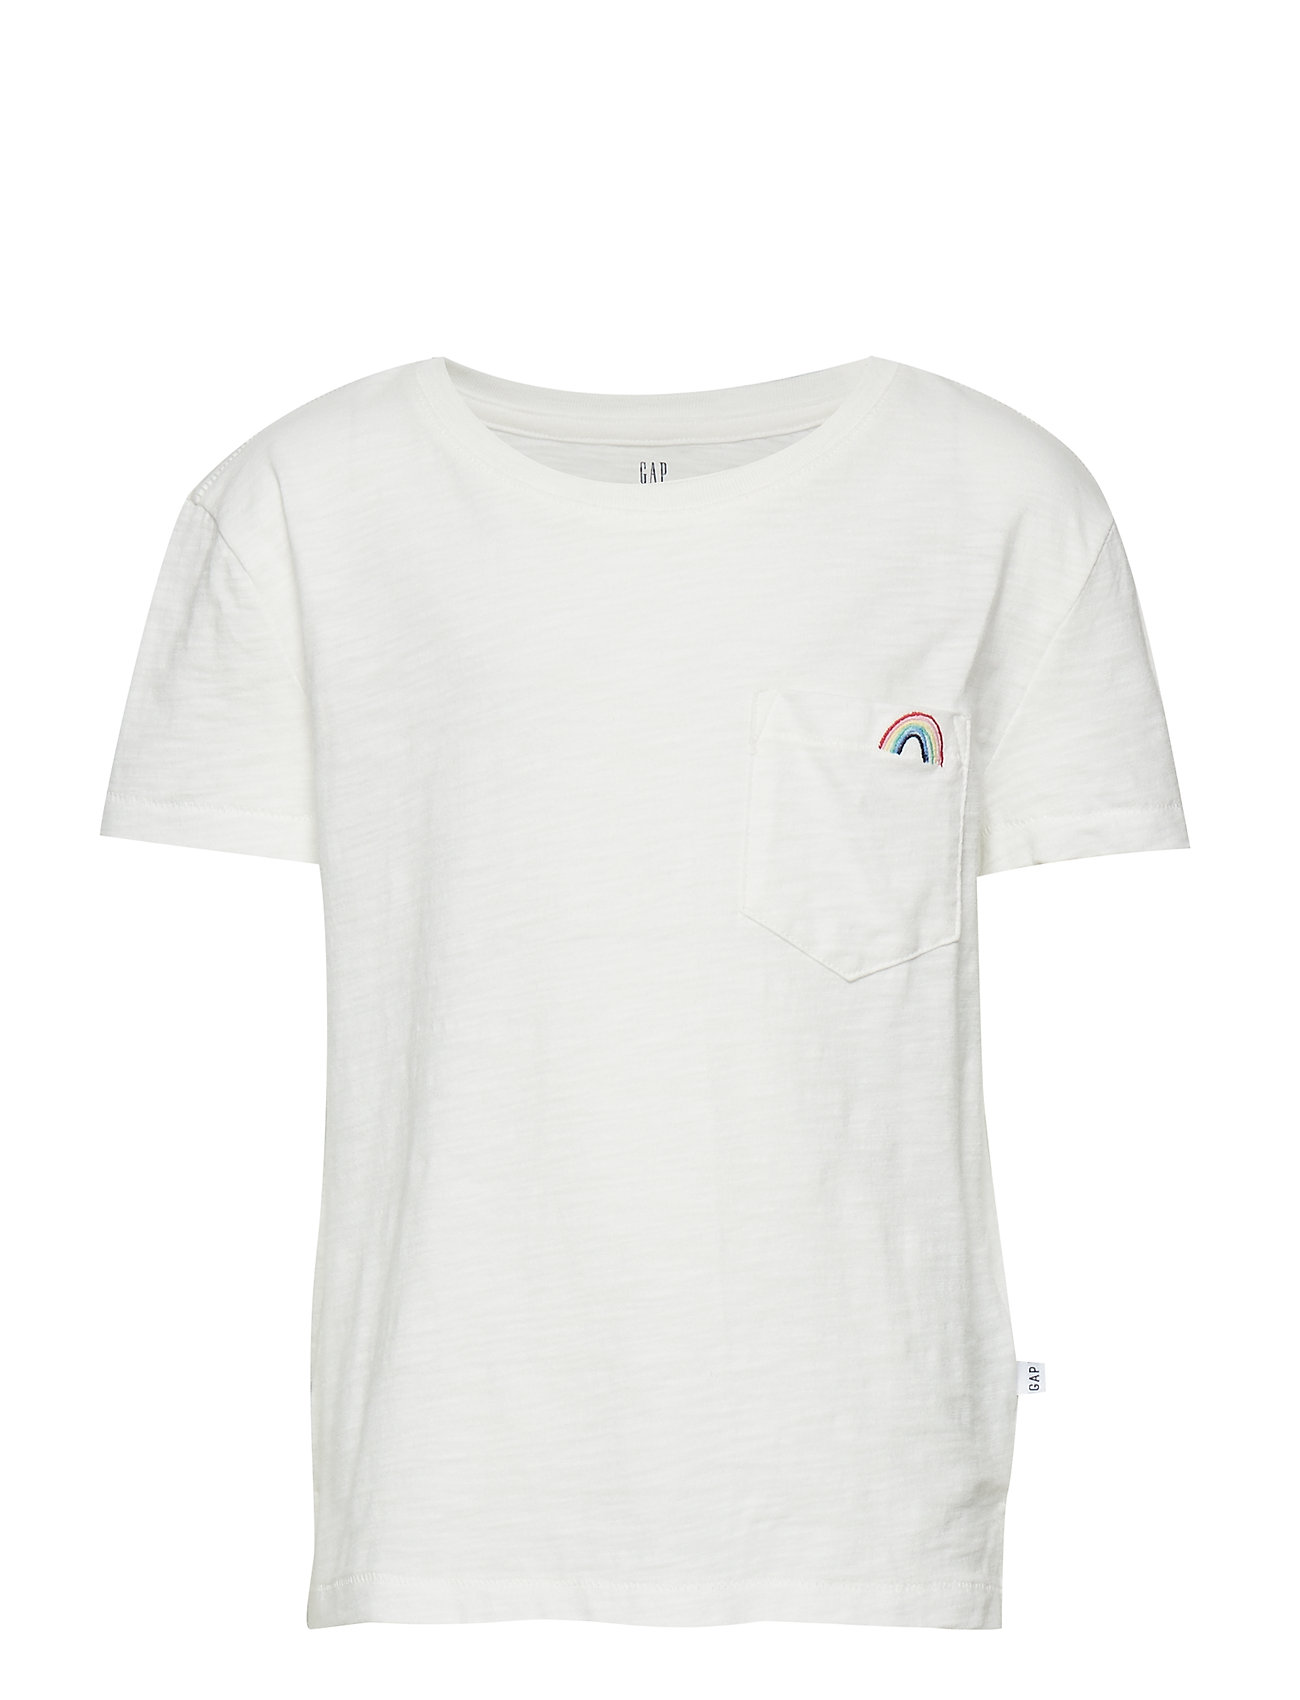 GAP PKT EMB TEE - NEW OFF WHITE